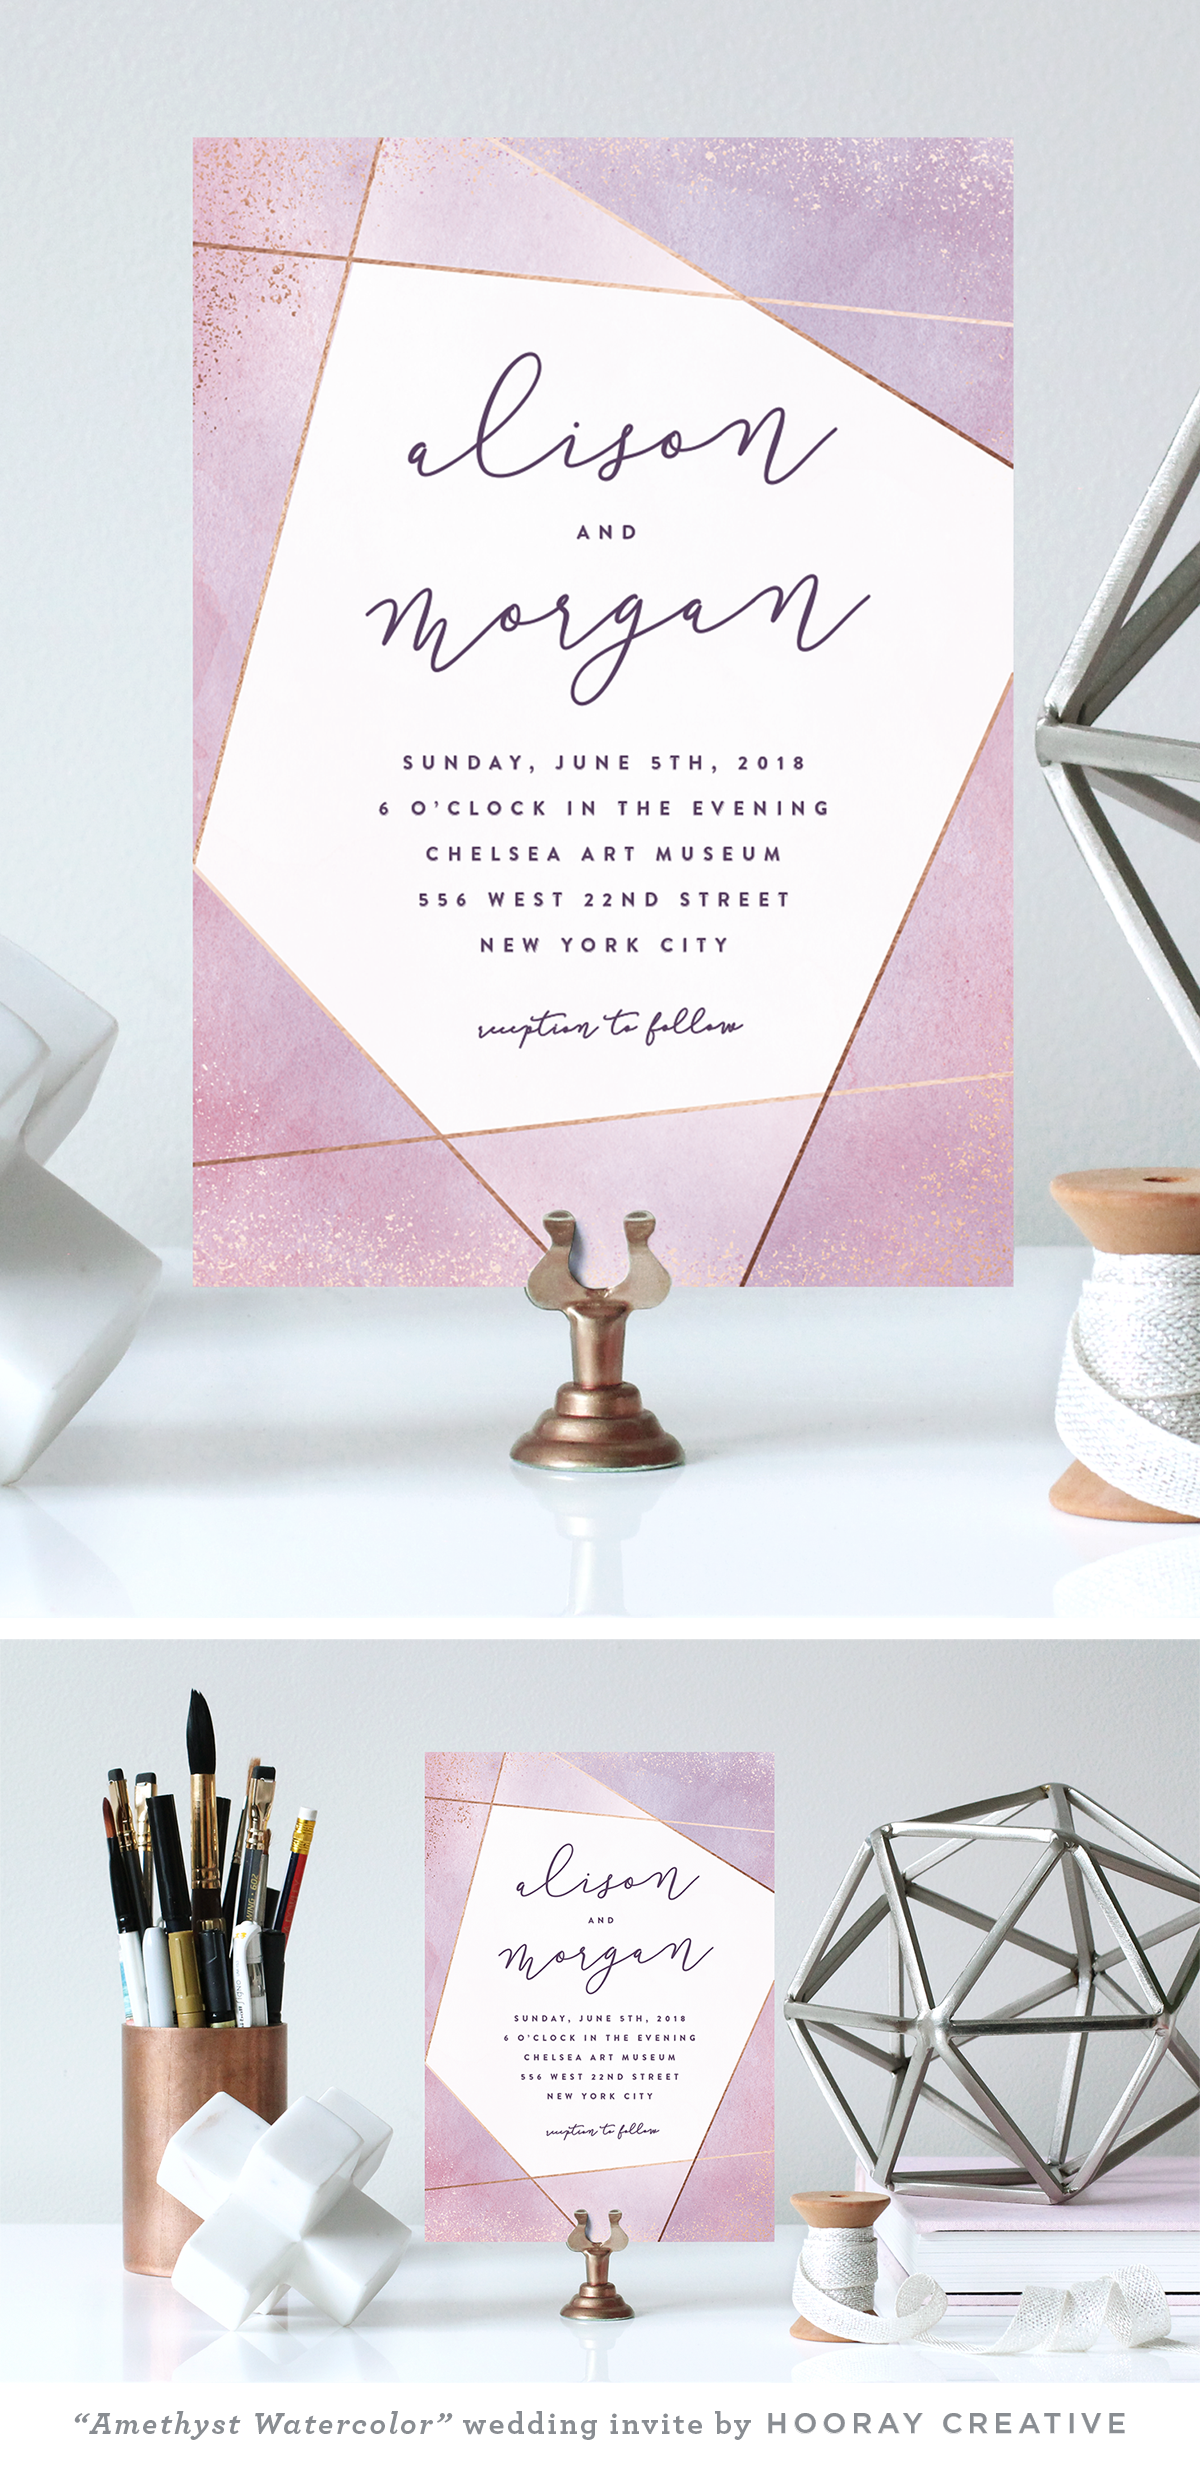 Amethyst Watercolor In 2019 Wedding Invitation Cards Wedding